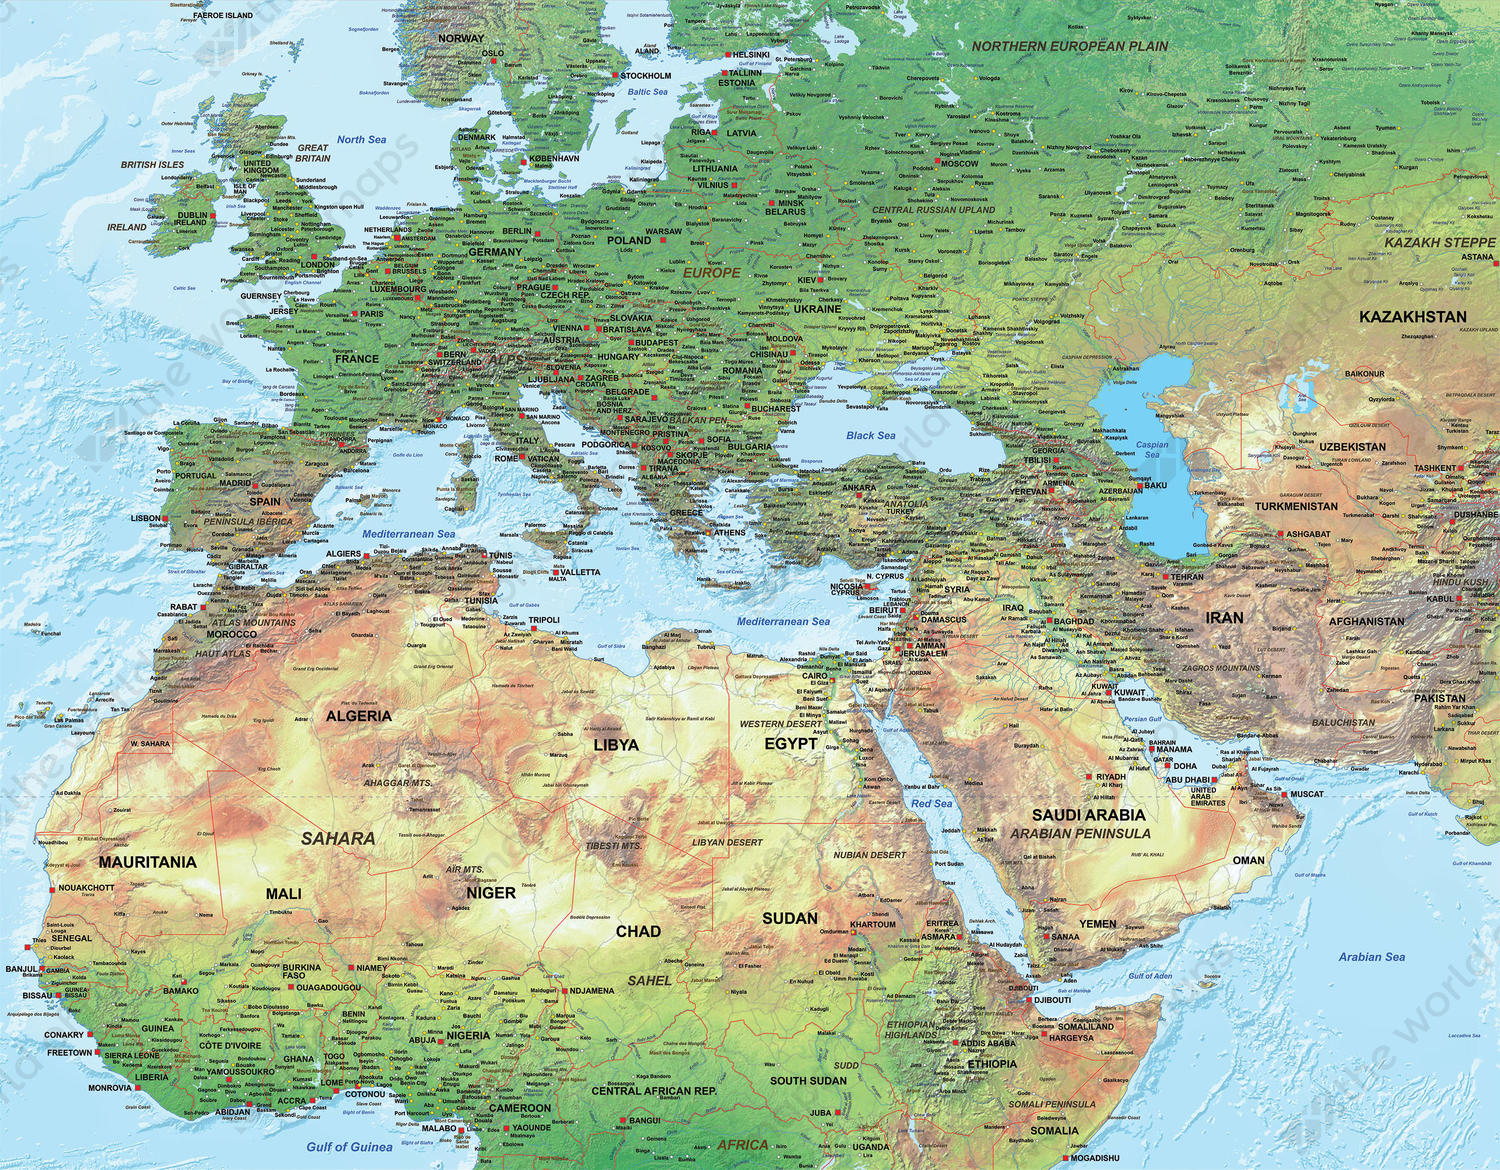 Picture of: Physical Digital Map Europe North Africa Middle East 1316 The World Of Maps Com